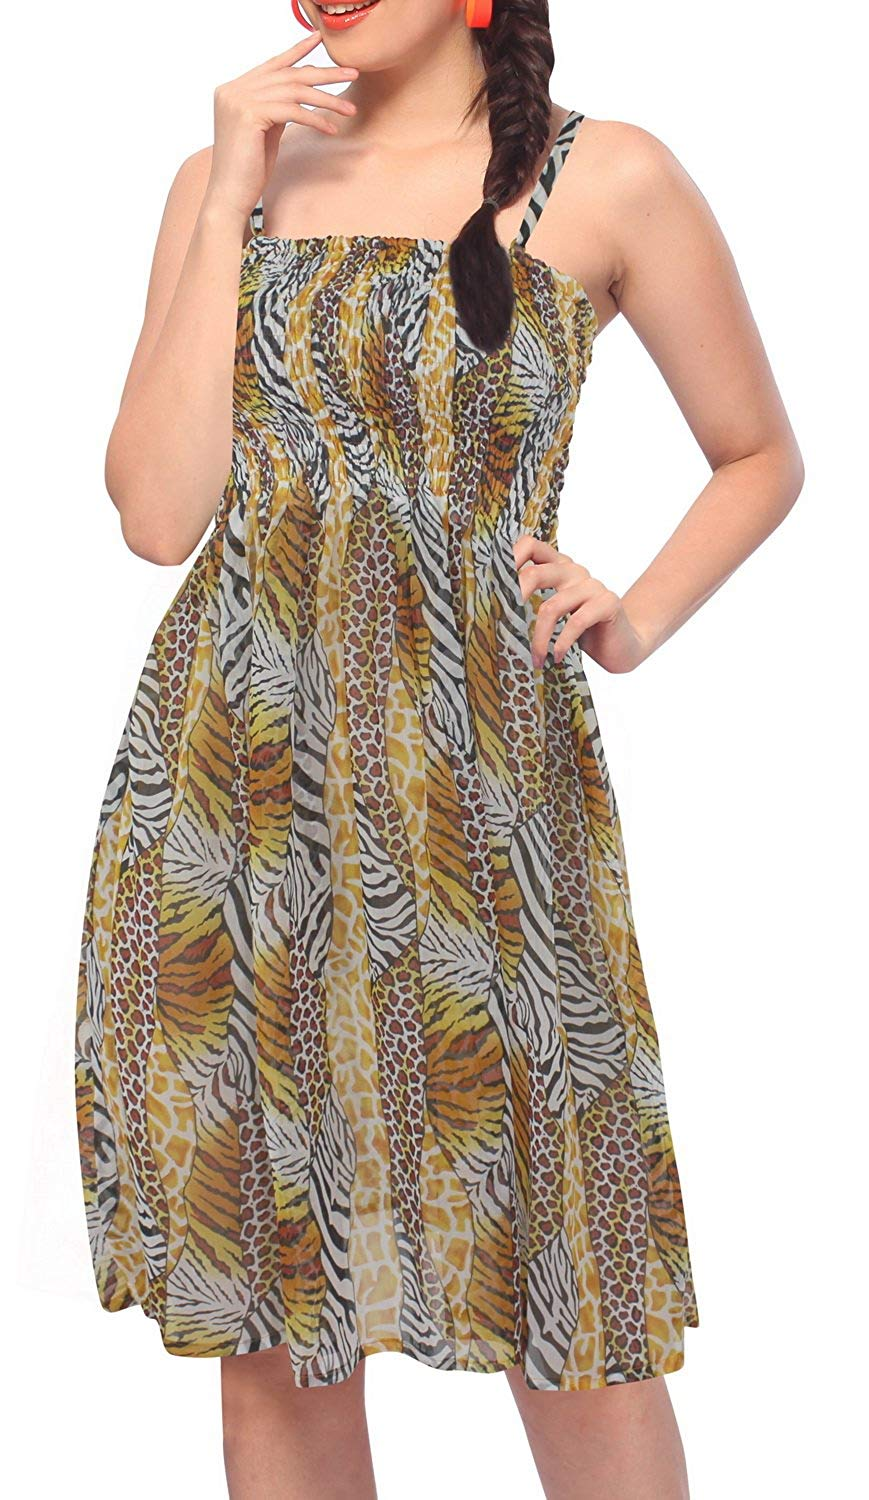 la-leela-womens-one-size-beach-dress-tube-dress-one-size-2